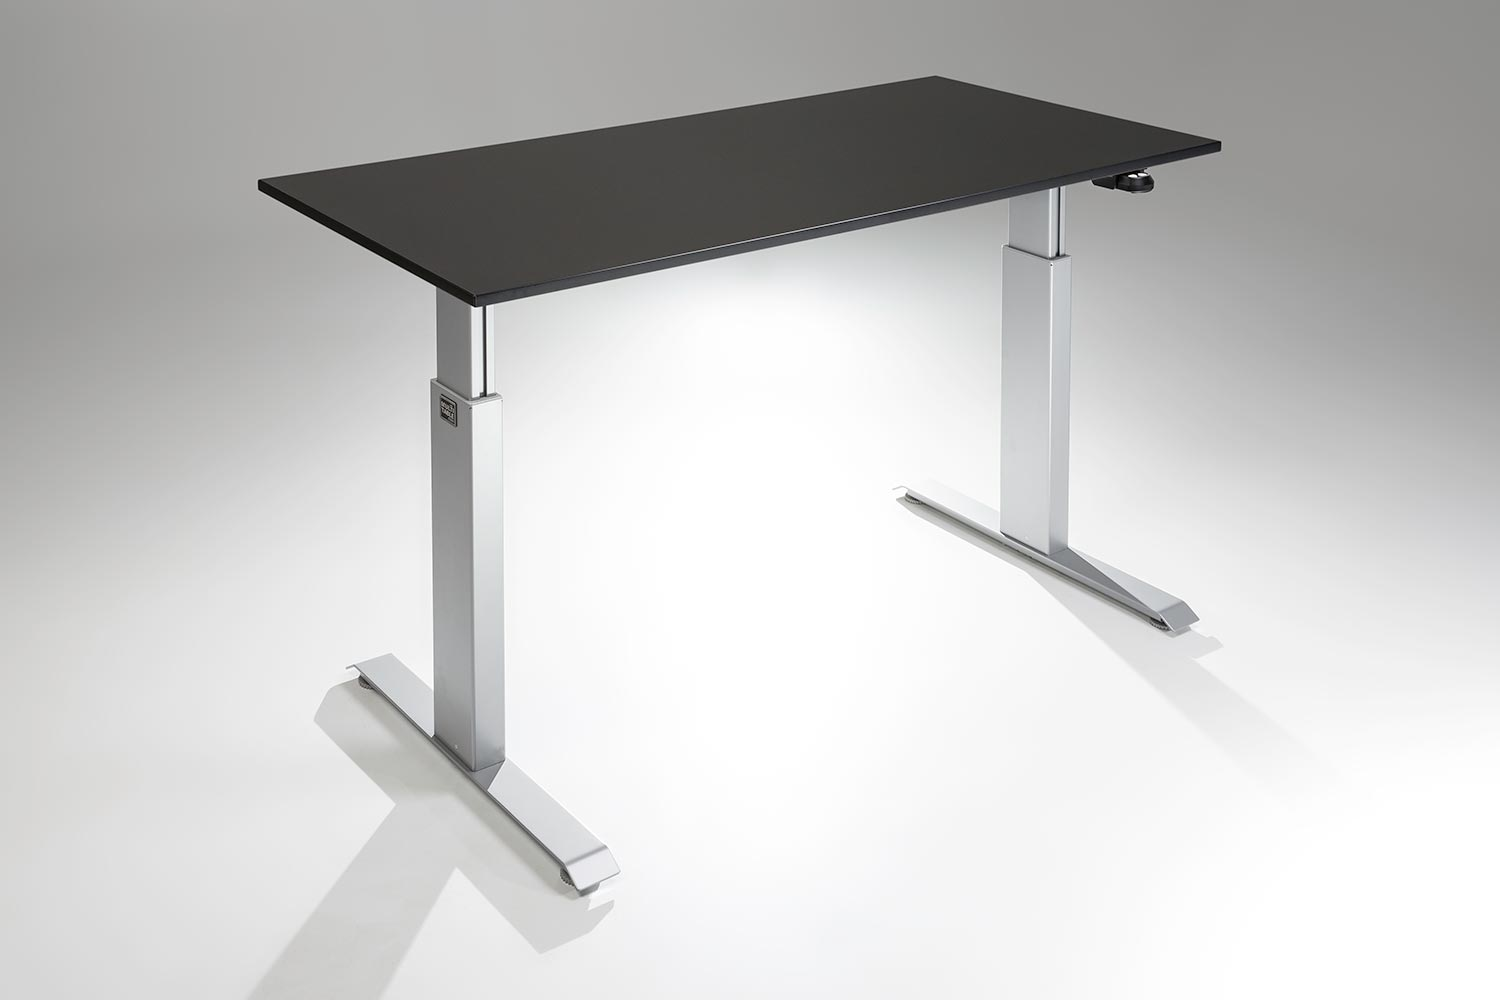 Flextable Height Adjustable Standing Desk Multitable